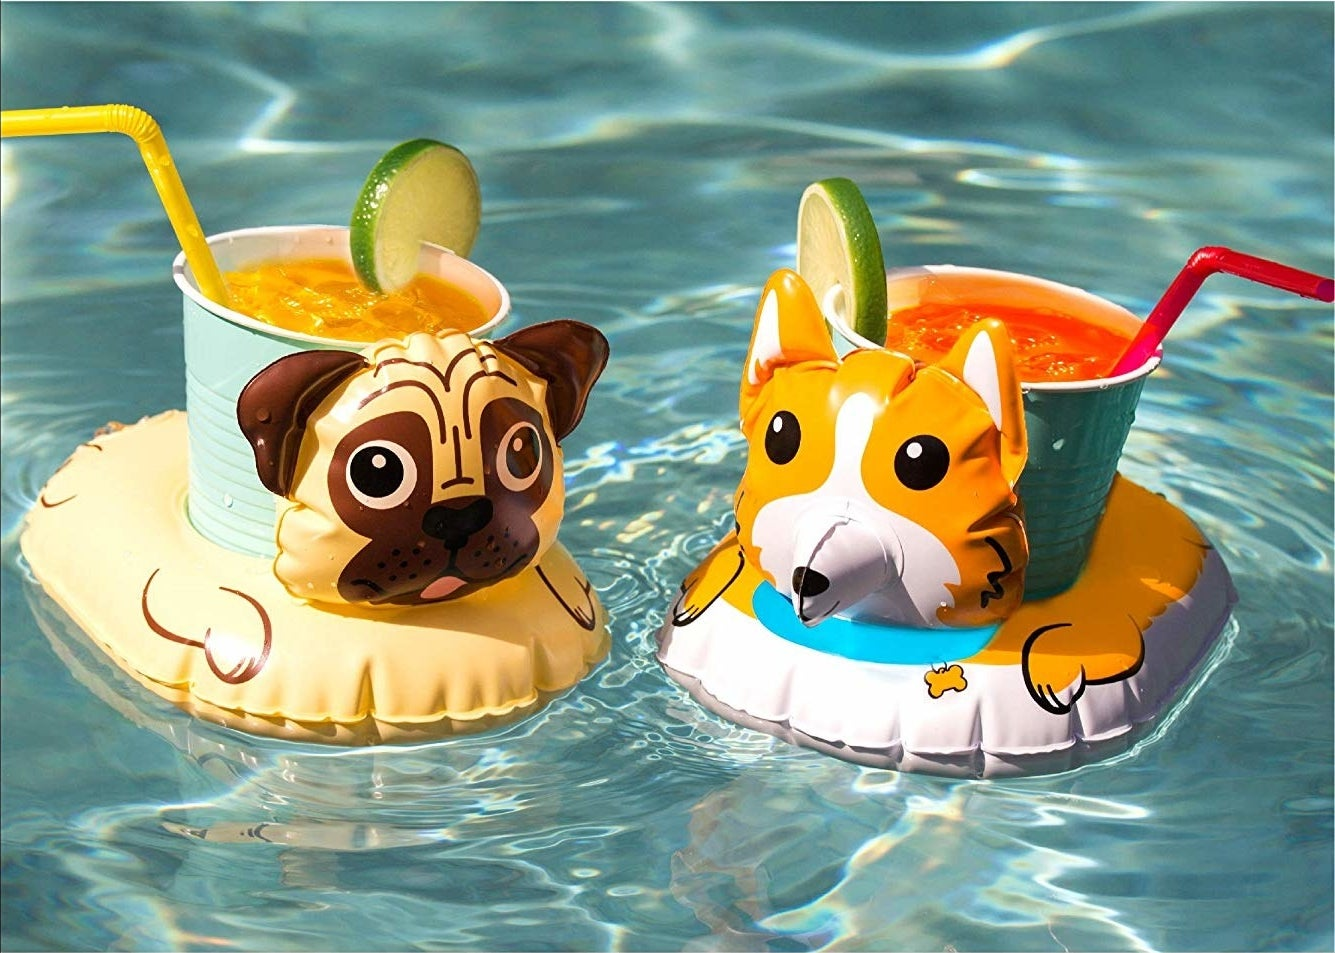 inflatable cup holders that look like pug and corgi inner tubes